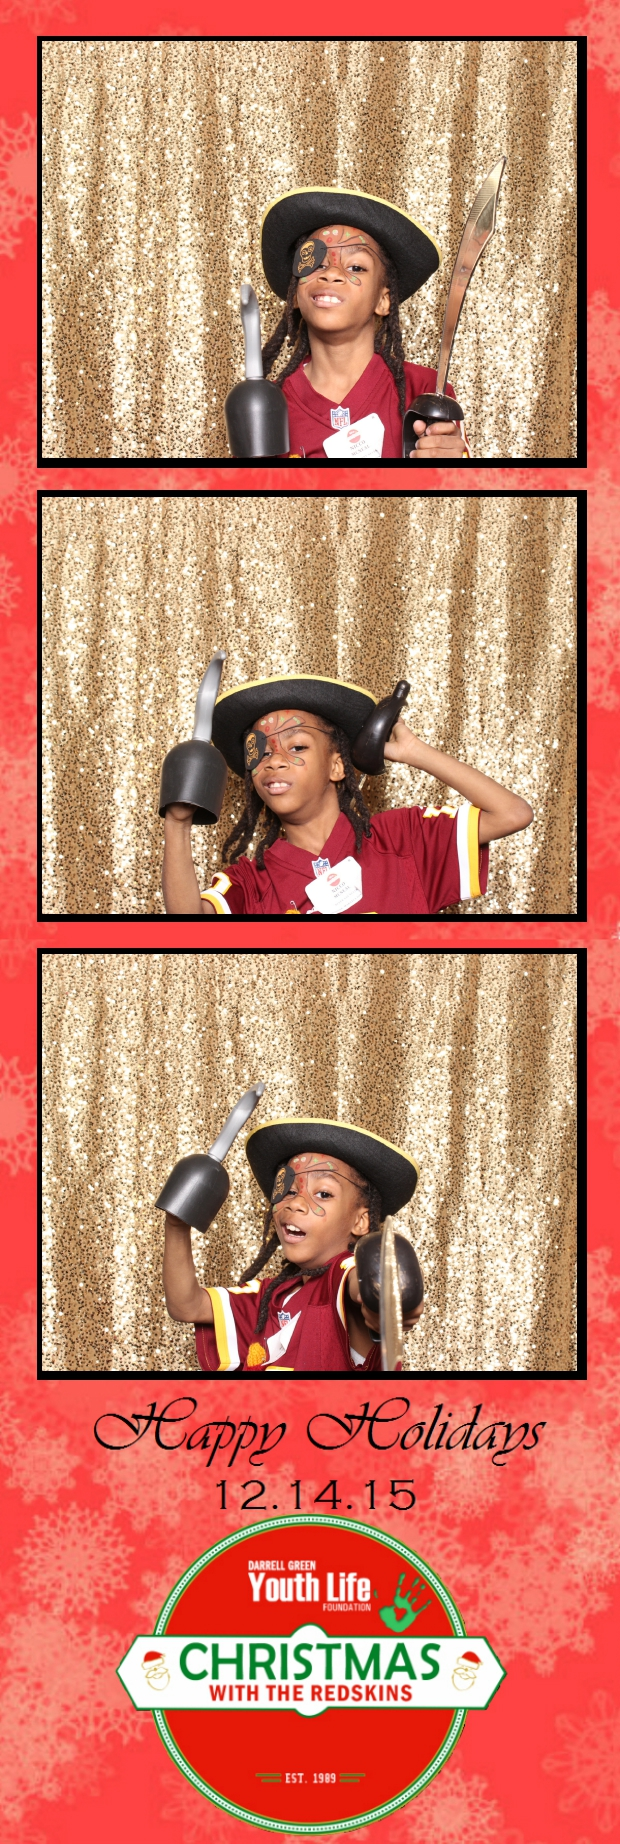 Guest House Events Photo Booth DGYLF Strips (42).jpg